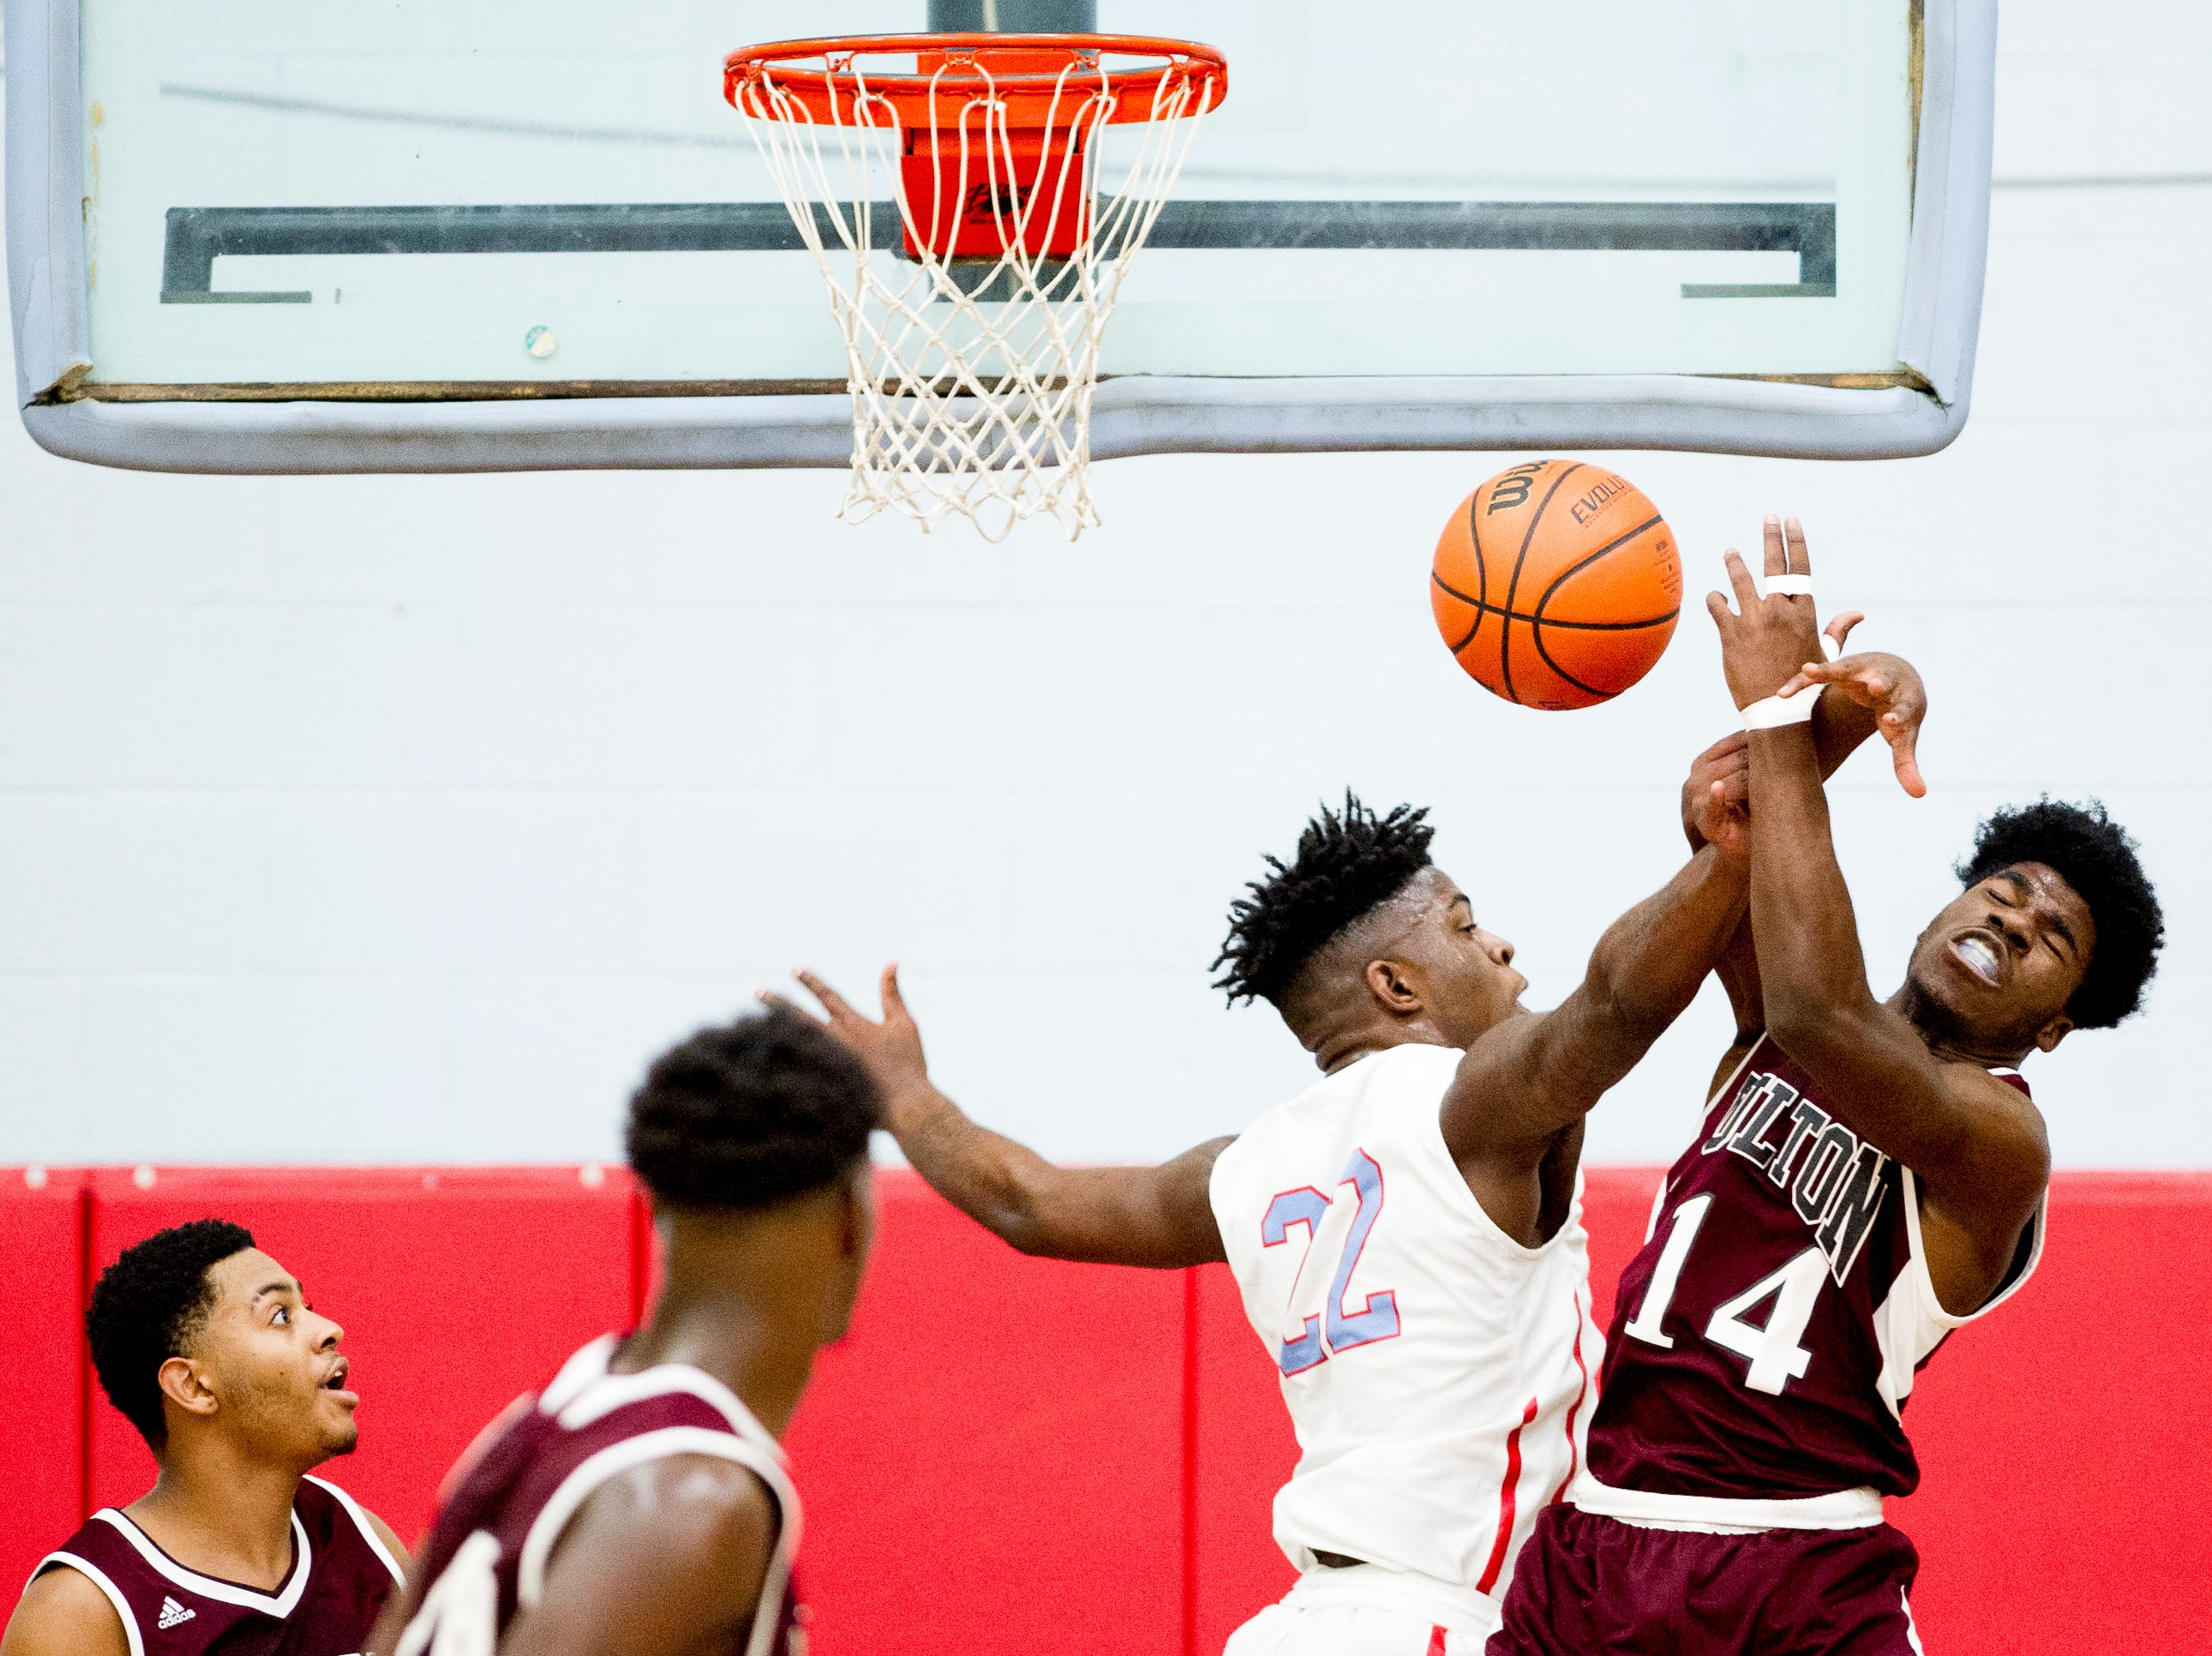 Fulton's Keith Foster (14) is knocked the ball from his hands by Austin-East's Dereke Upton (22) during a game between Austin-East and Fulton at Austin-East High School in Knoxville, Tennessee on Saturday, January 5, 2019.